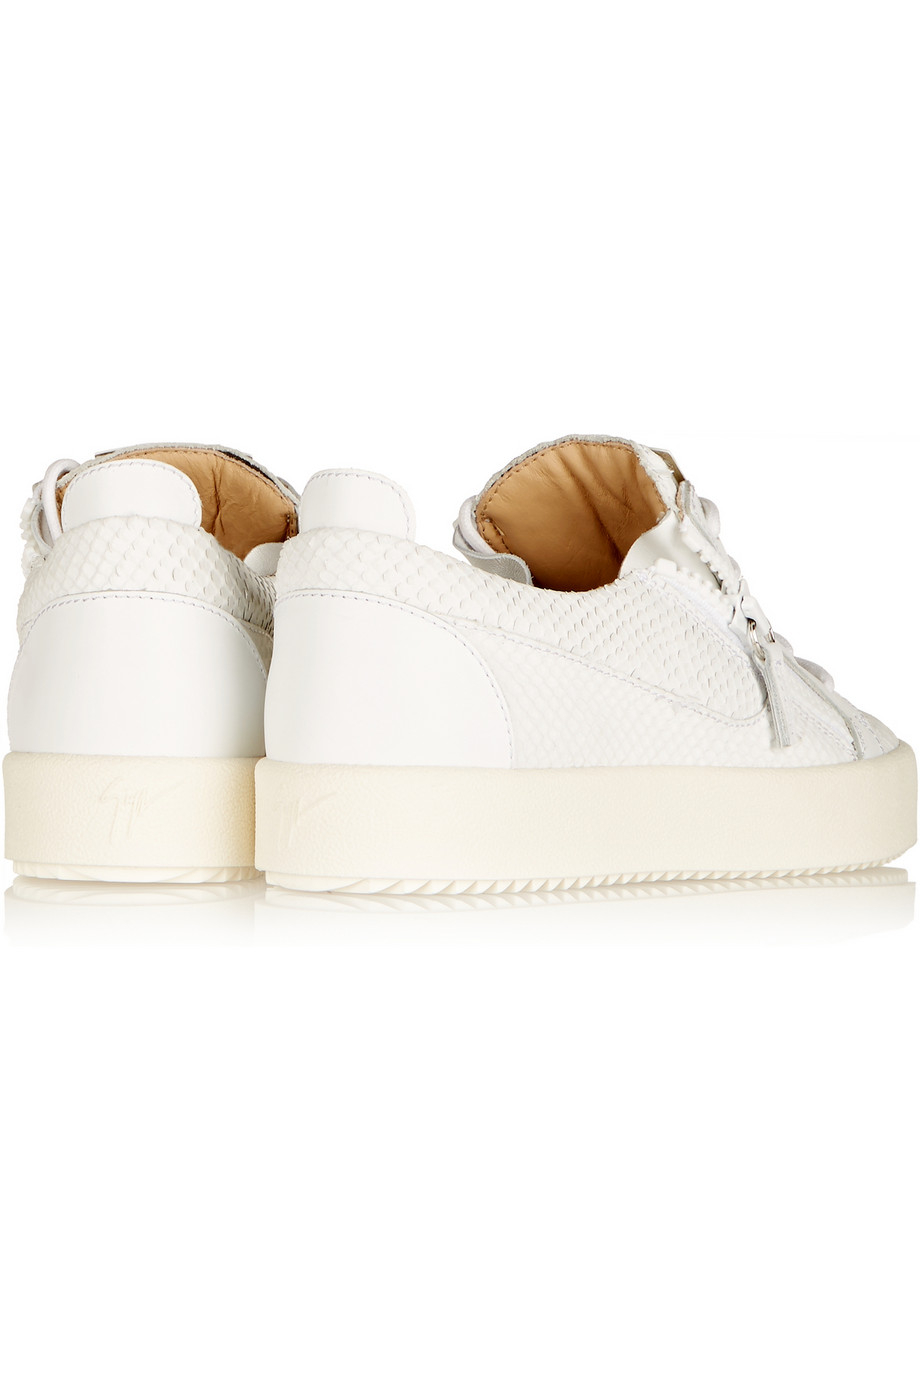 Giuseppe Zanotti May London Snake-Effect Leather Sneakers in White